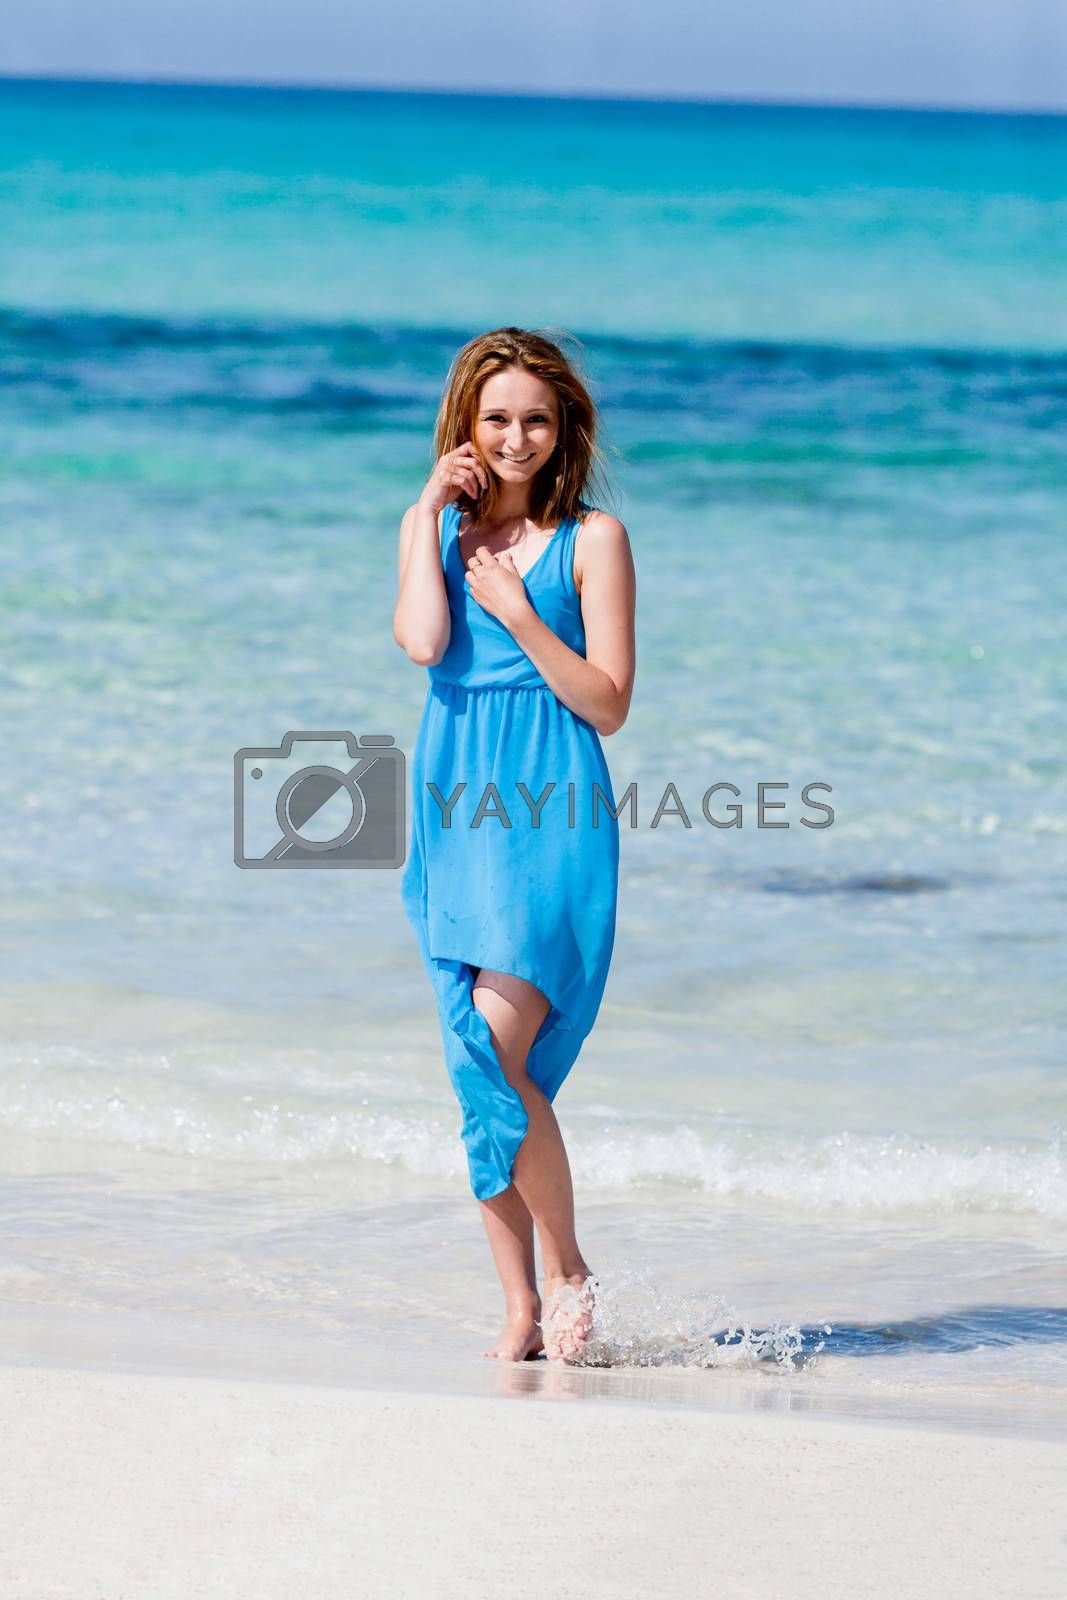 beautful happy woman on the beach lifestyle summertime carefree